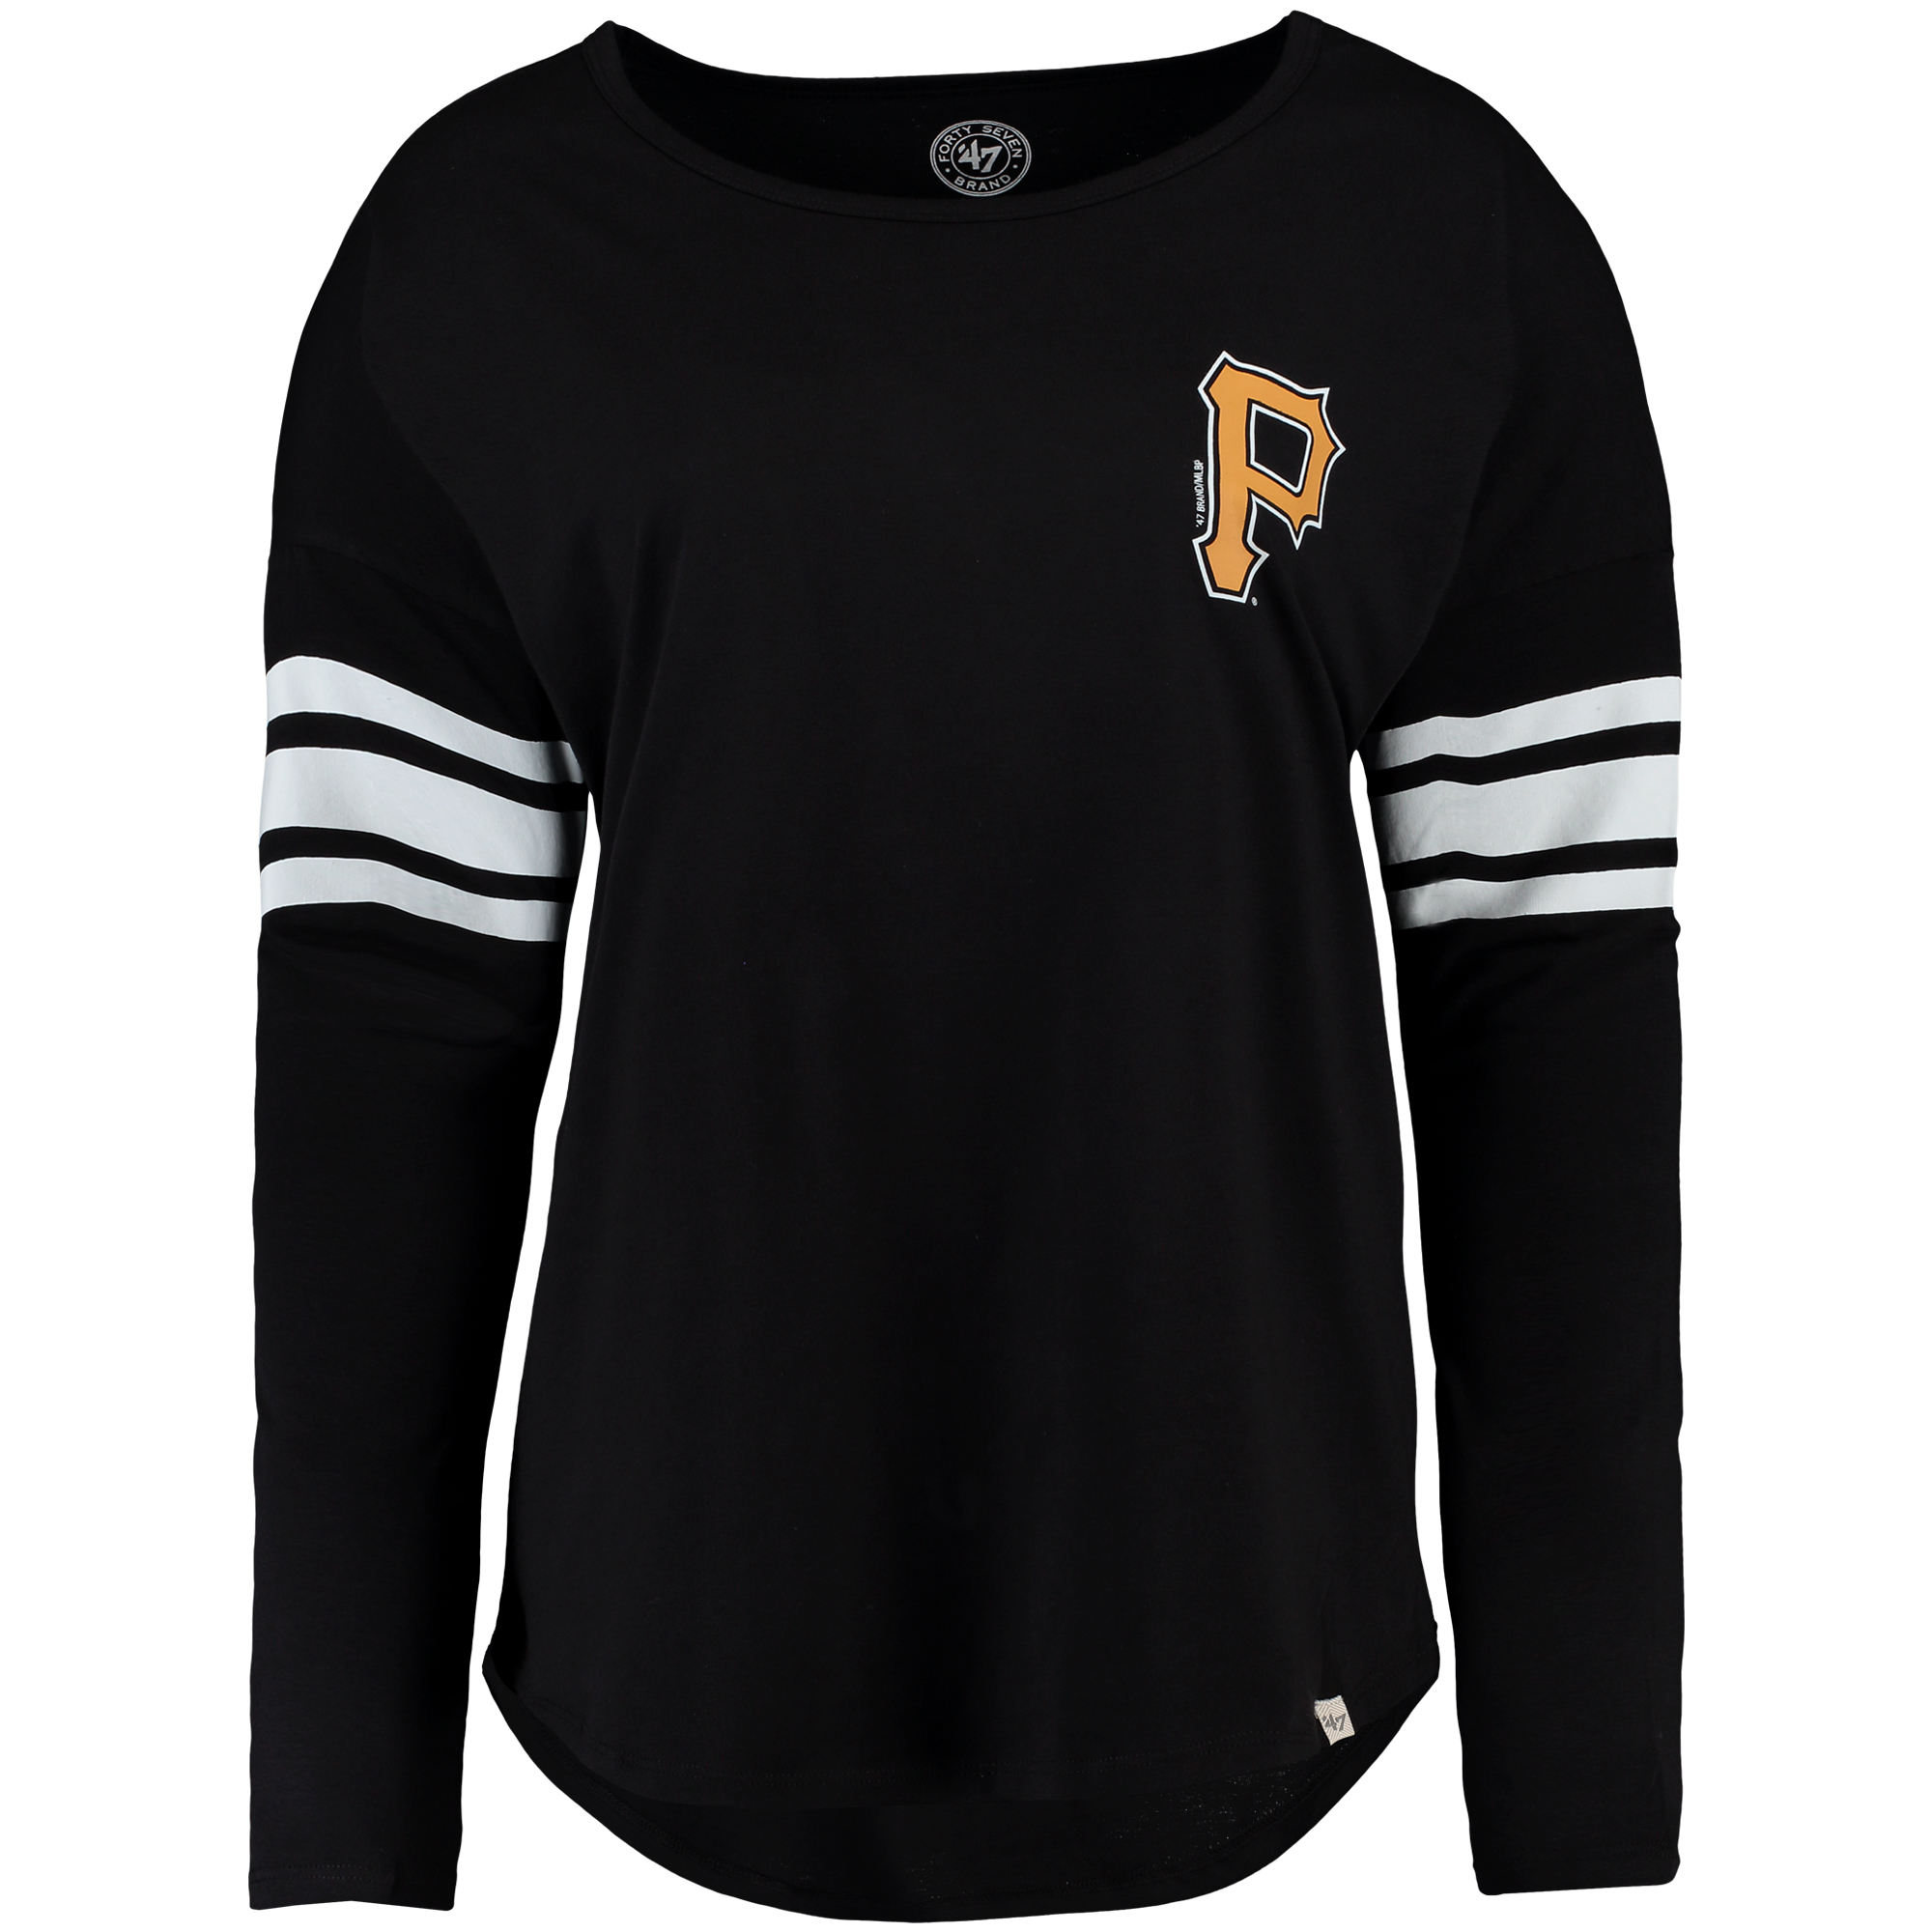 Pittsburgh Pirates '47 Women's Ultra Courtside Long Sleeve T-Shirt Black by TWINS ENTERPRISE INC/47 BRAND